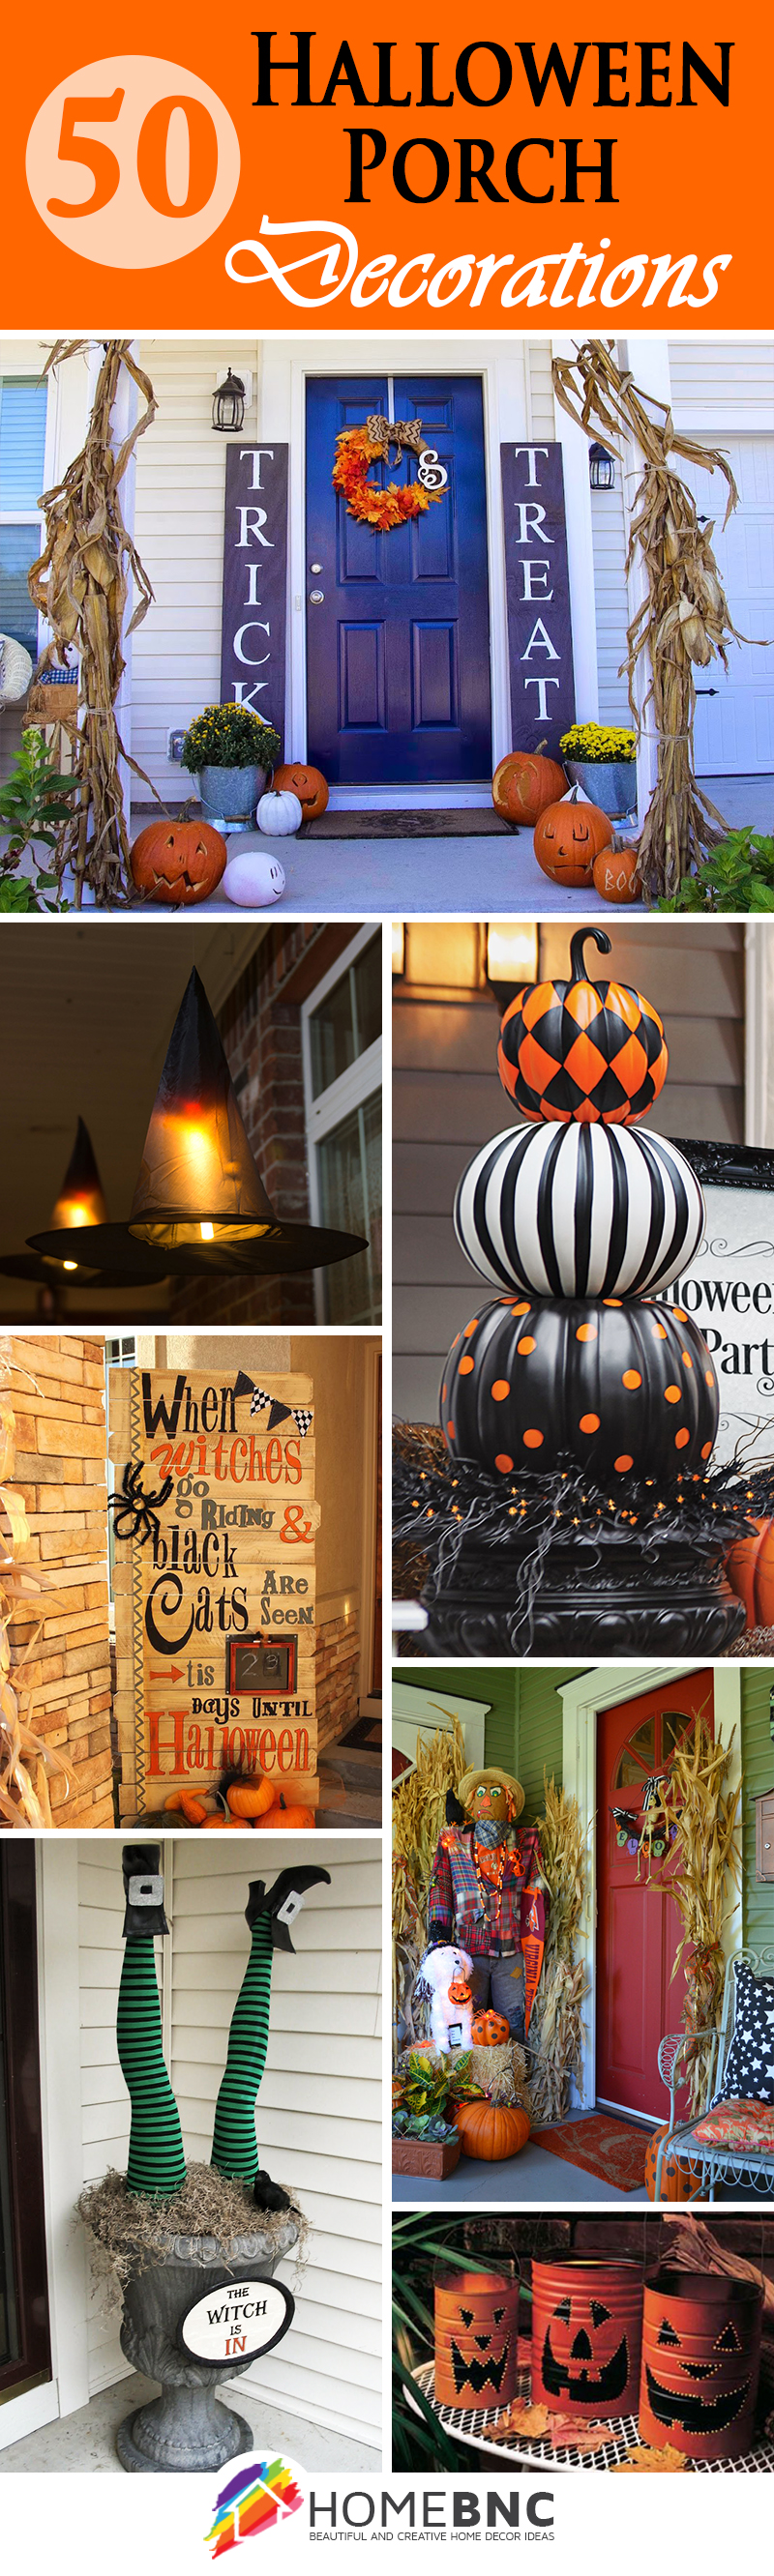 Halloween Porch Decoration Ideas